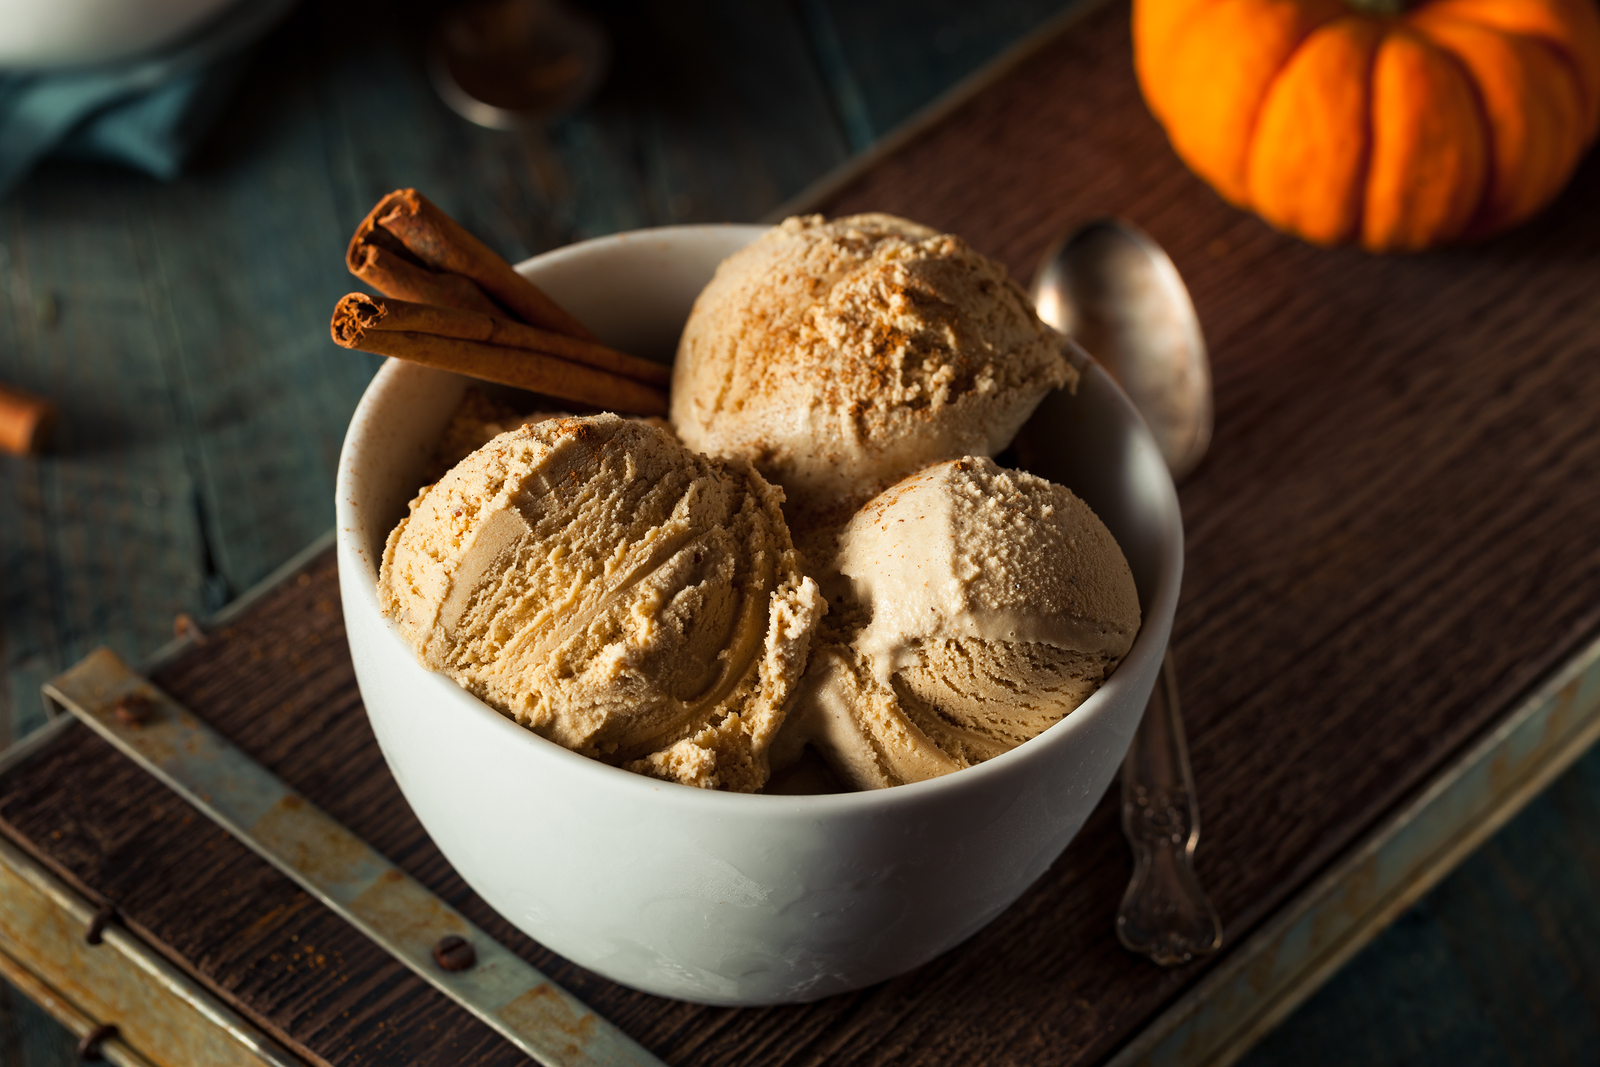 bigstock-Homemade-Pumpkin-Pie-Ice-Cream-110176169